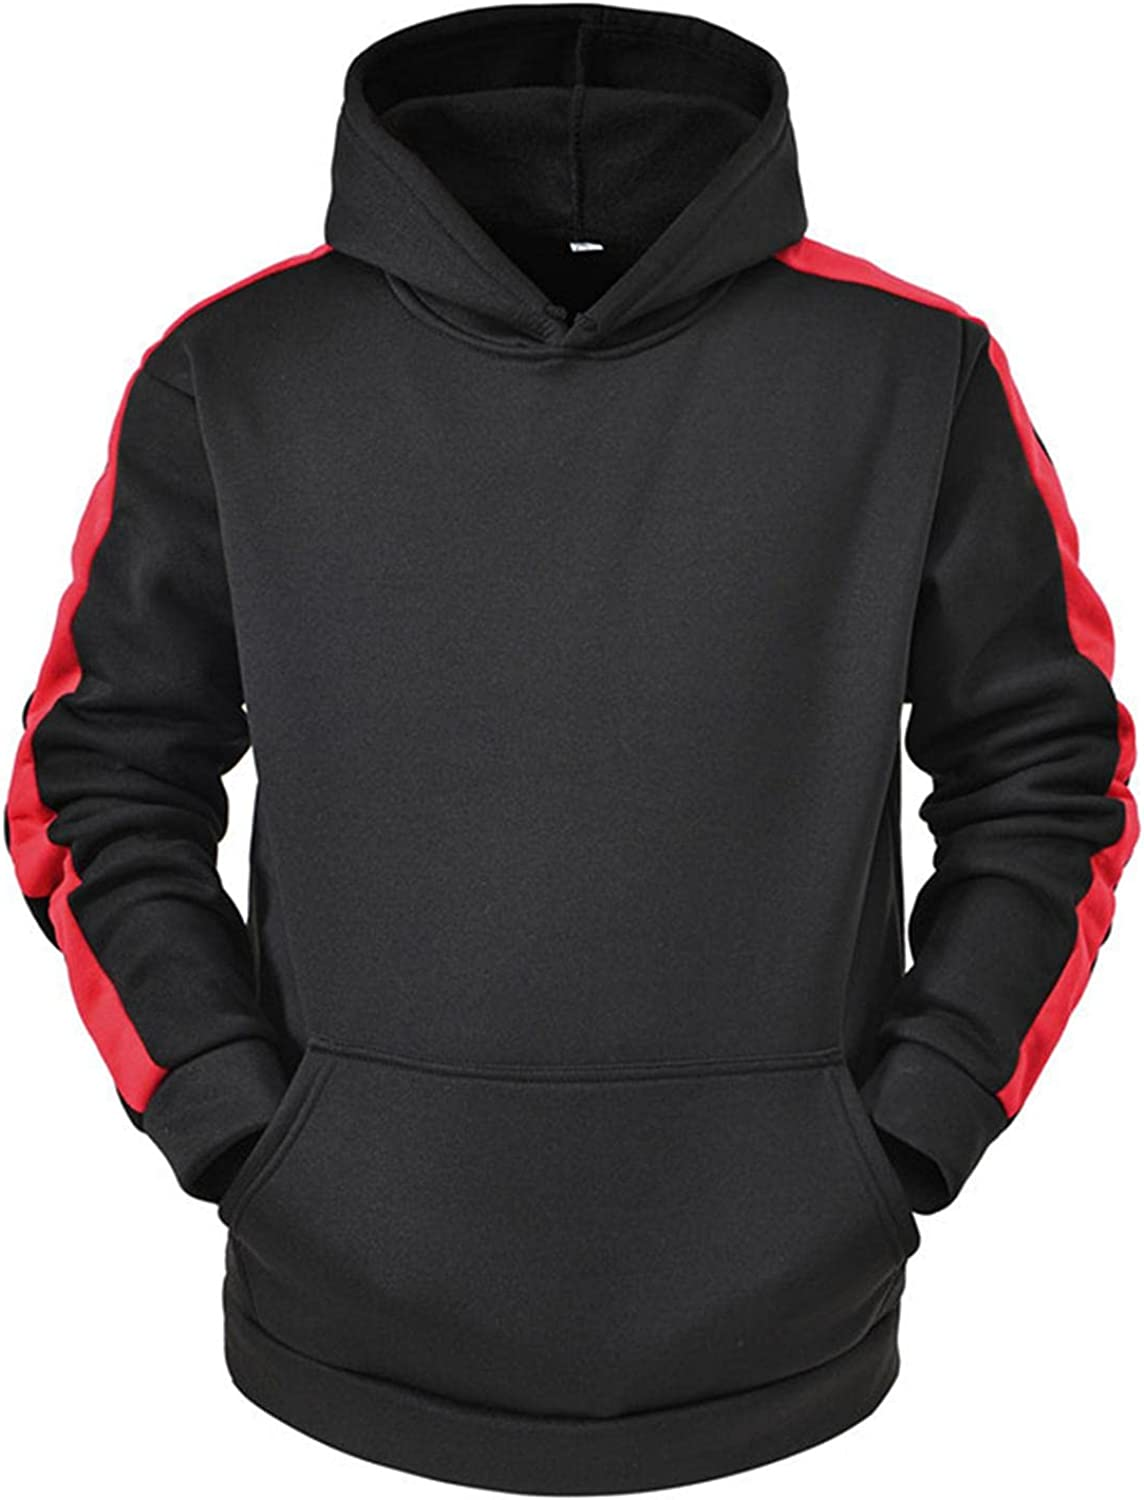 Men's Midweight Long Sleeve Hooded Sweatshirts Crewneck Pullover Hoodies with Designs Casual Novelty Fashion T-Shirts